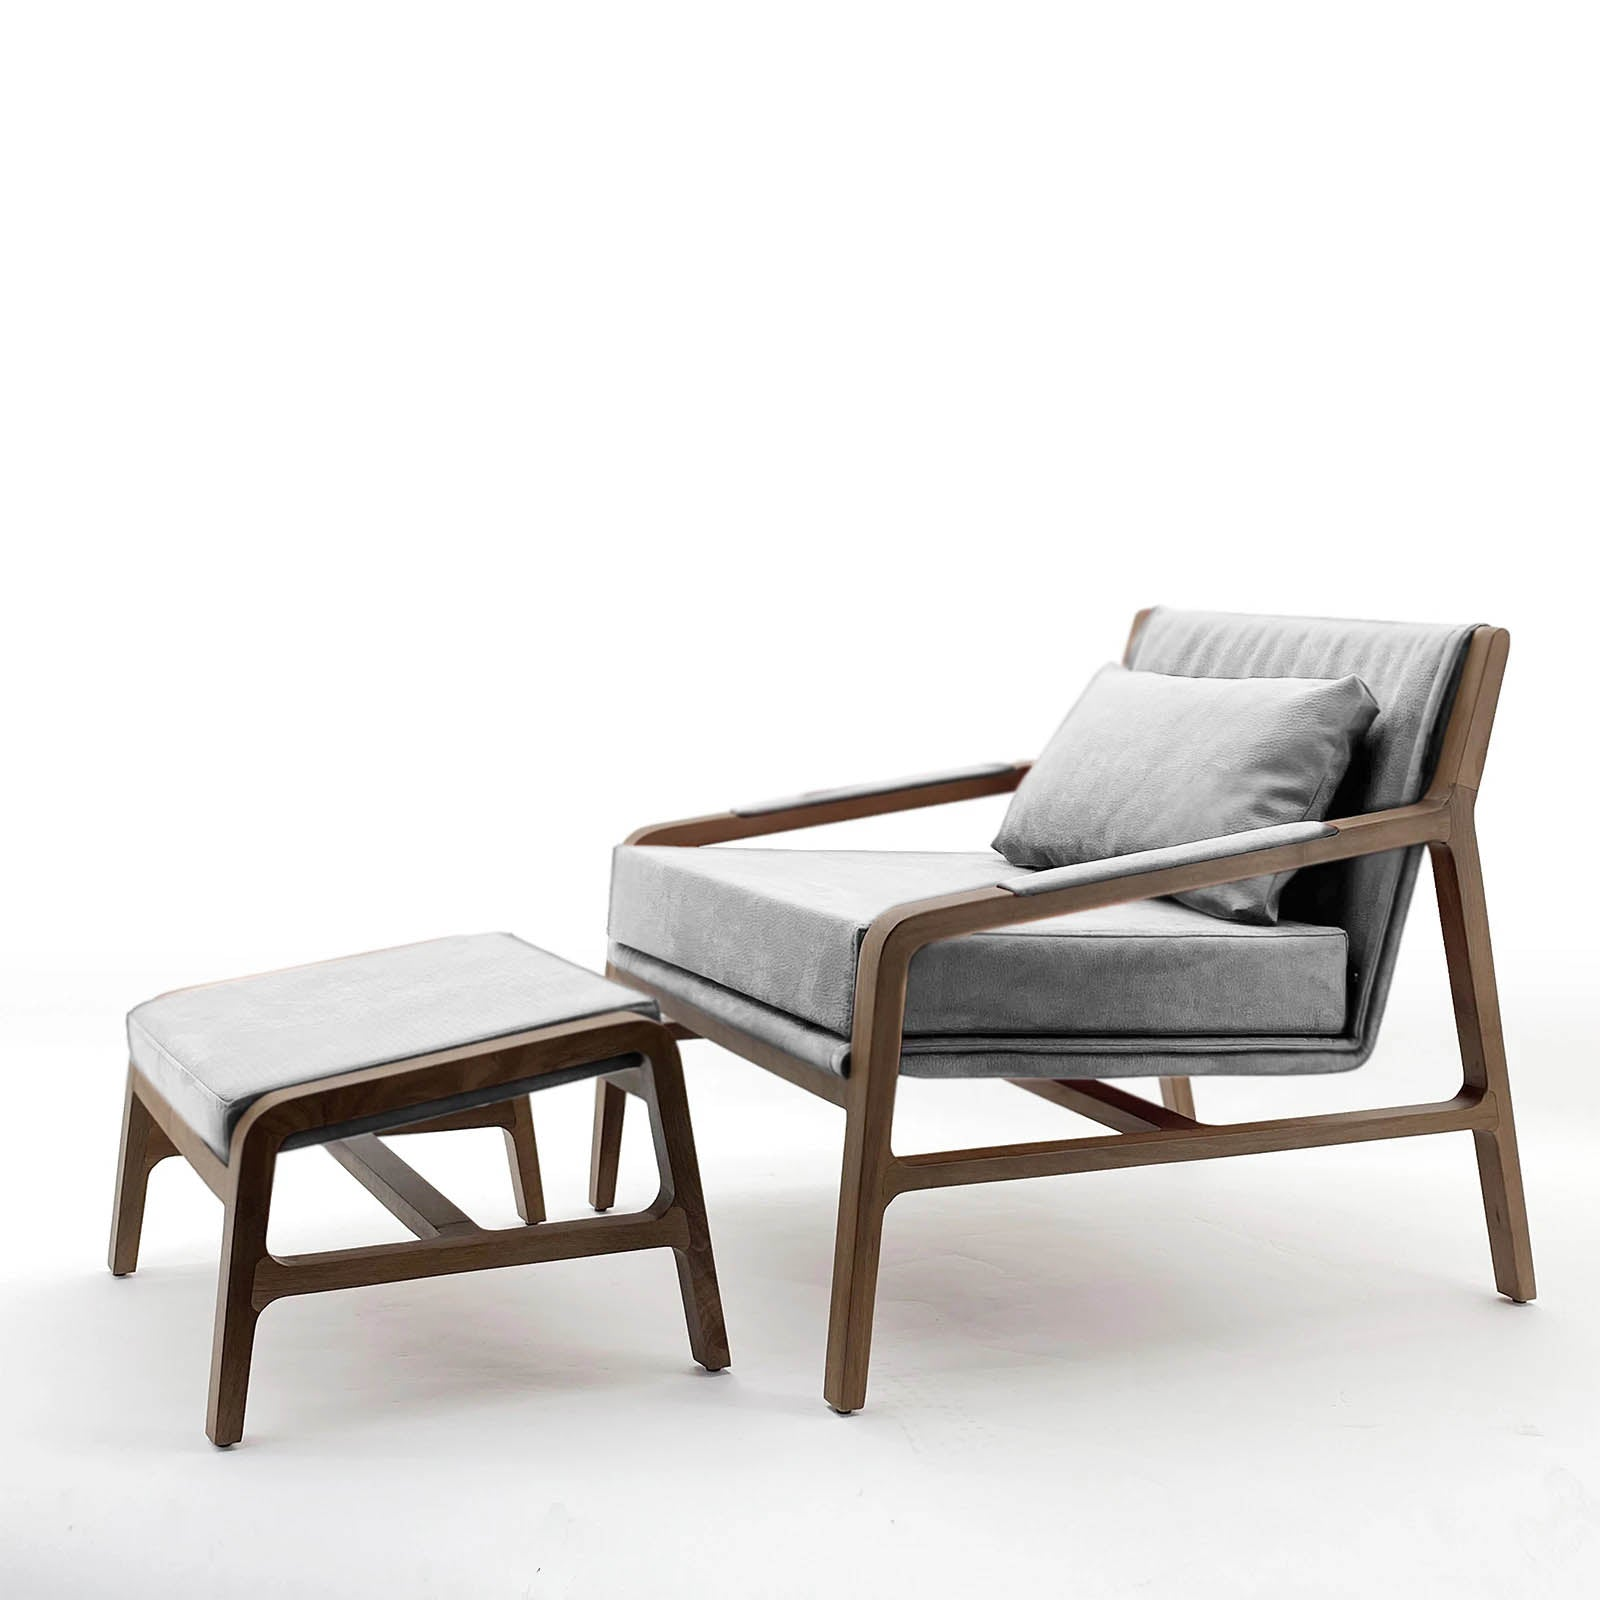 Nordic  solid wood lounge chair and ottoman   Nordic-001-Grey(ROSE Berger)